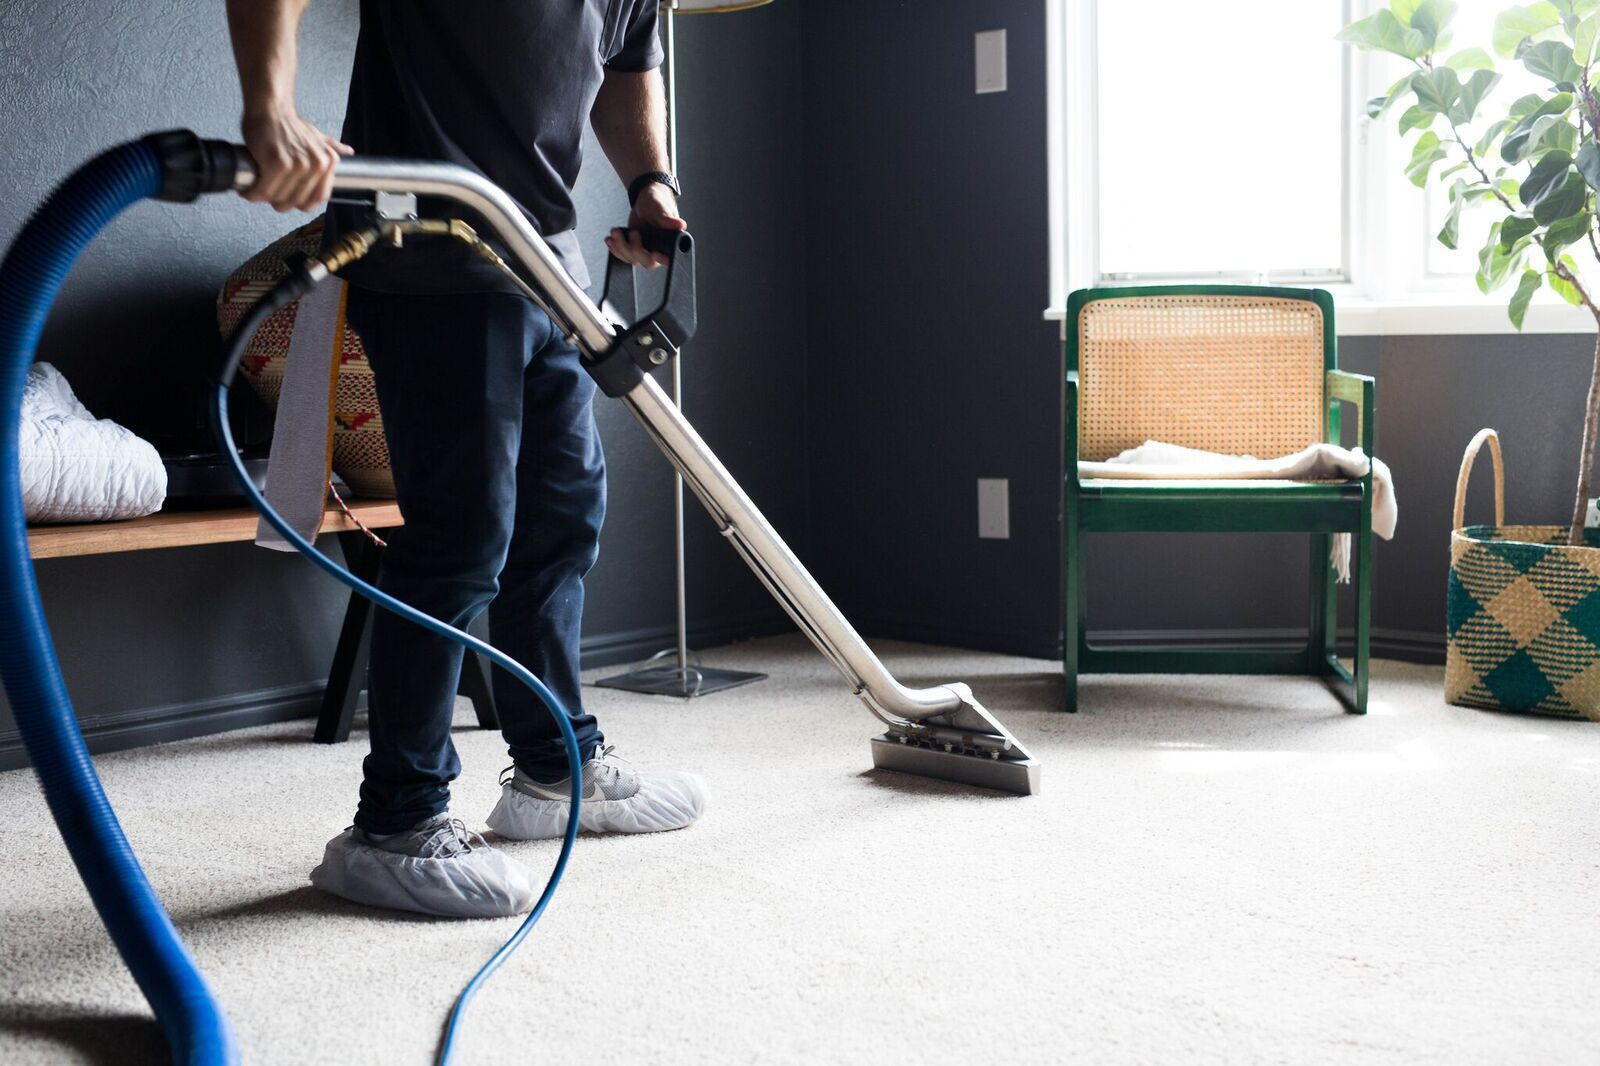 Carpet Cleaning San Diego Zerorez San Diego